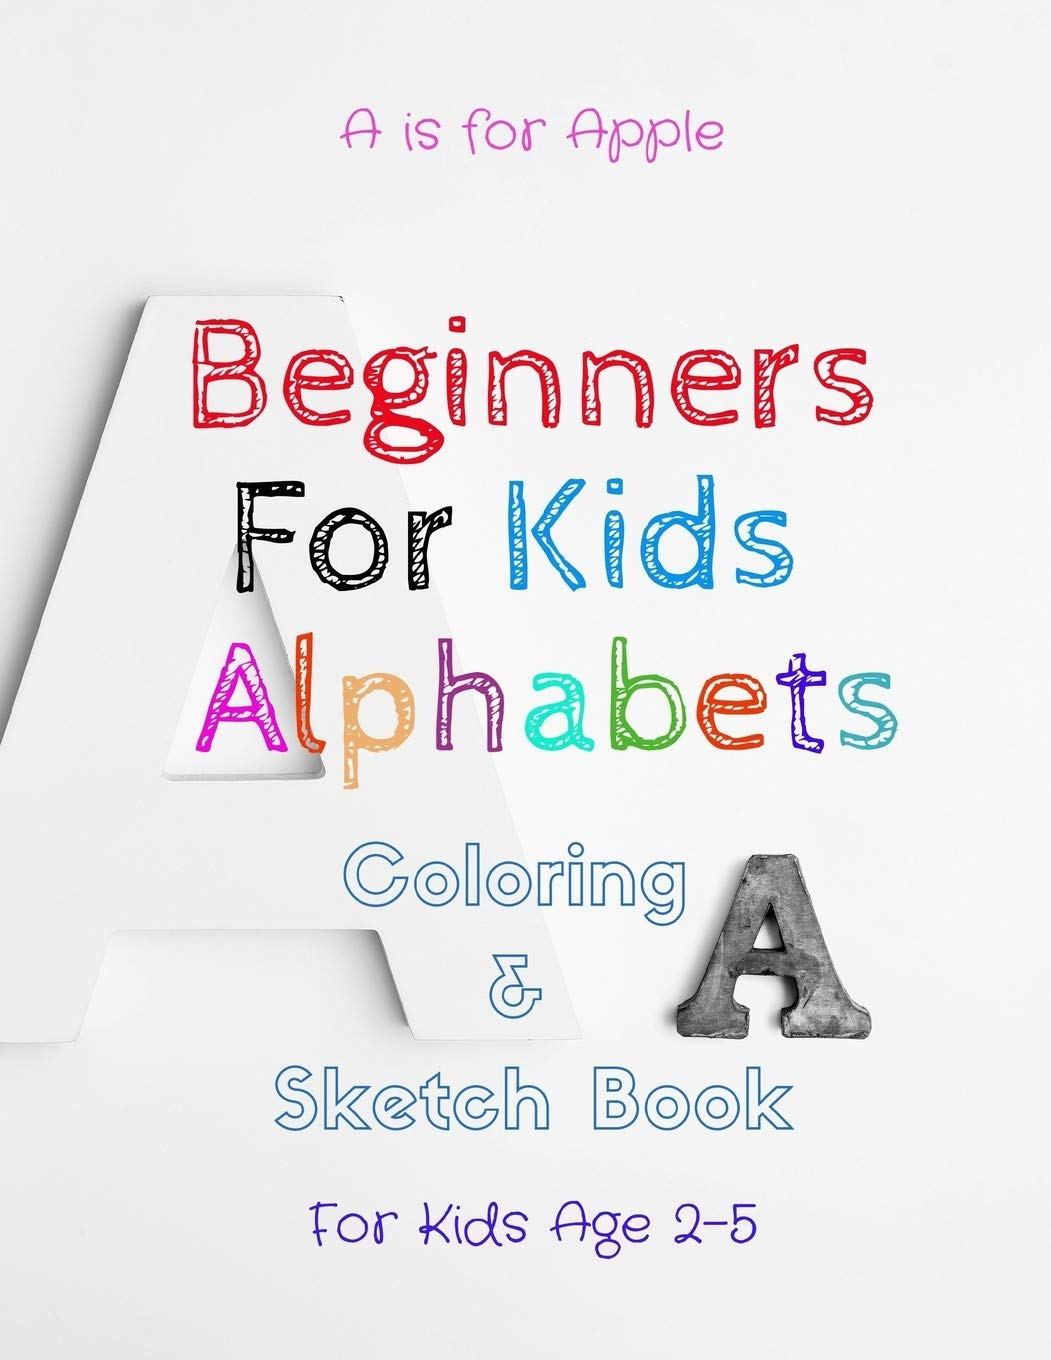 Beginners For Kids Alphabets Fun Alphabets Coloring Book For Toddlers Kids Ages 2 To 5 Beginner Learn To Color Recognize Abc And Sketching Morgan Janelle 9781693297922 Amazon Com Books